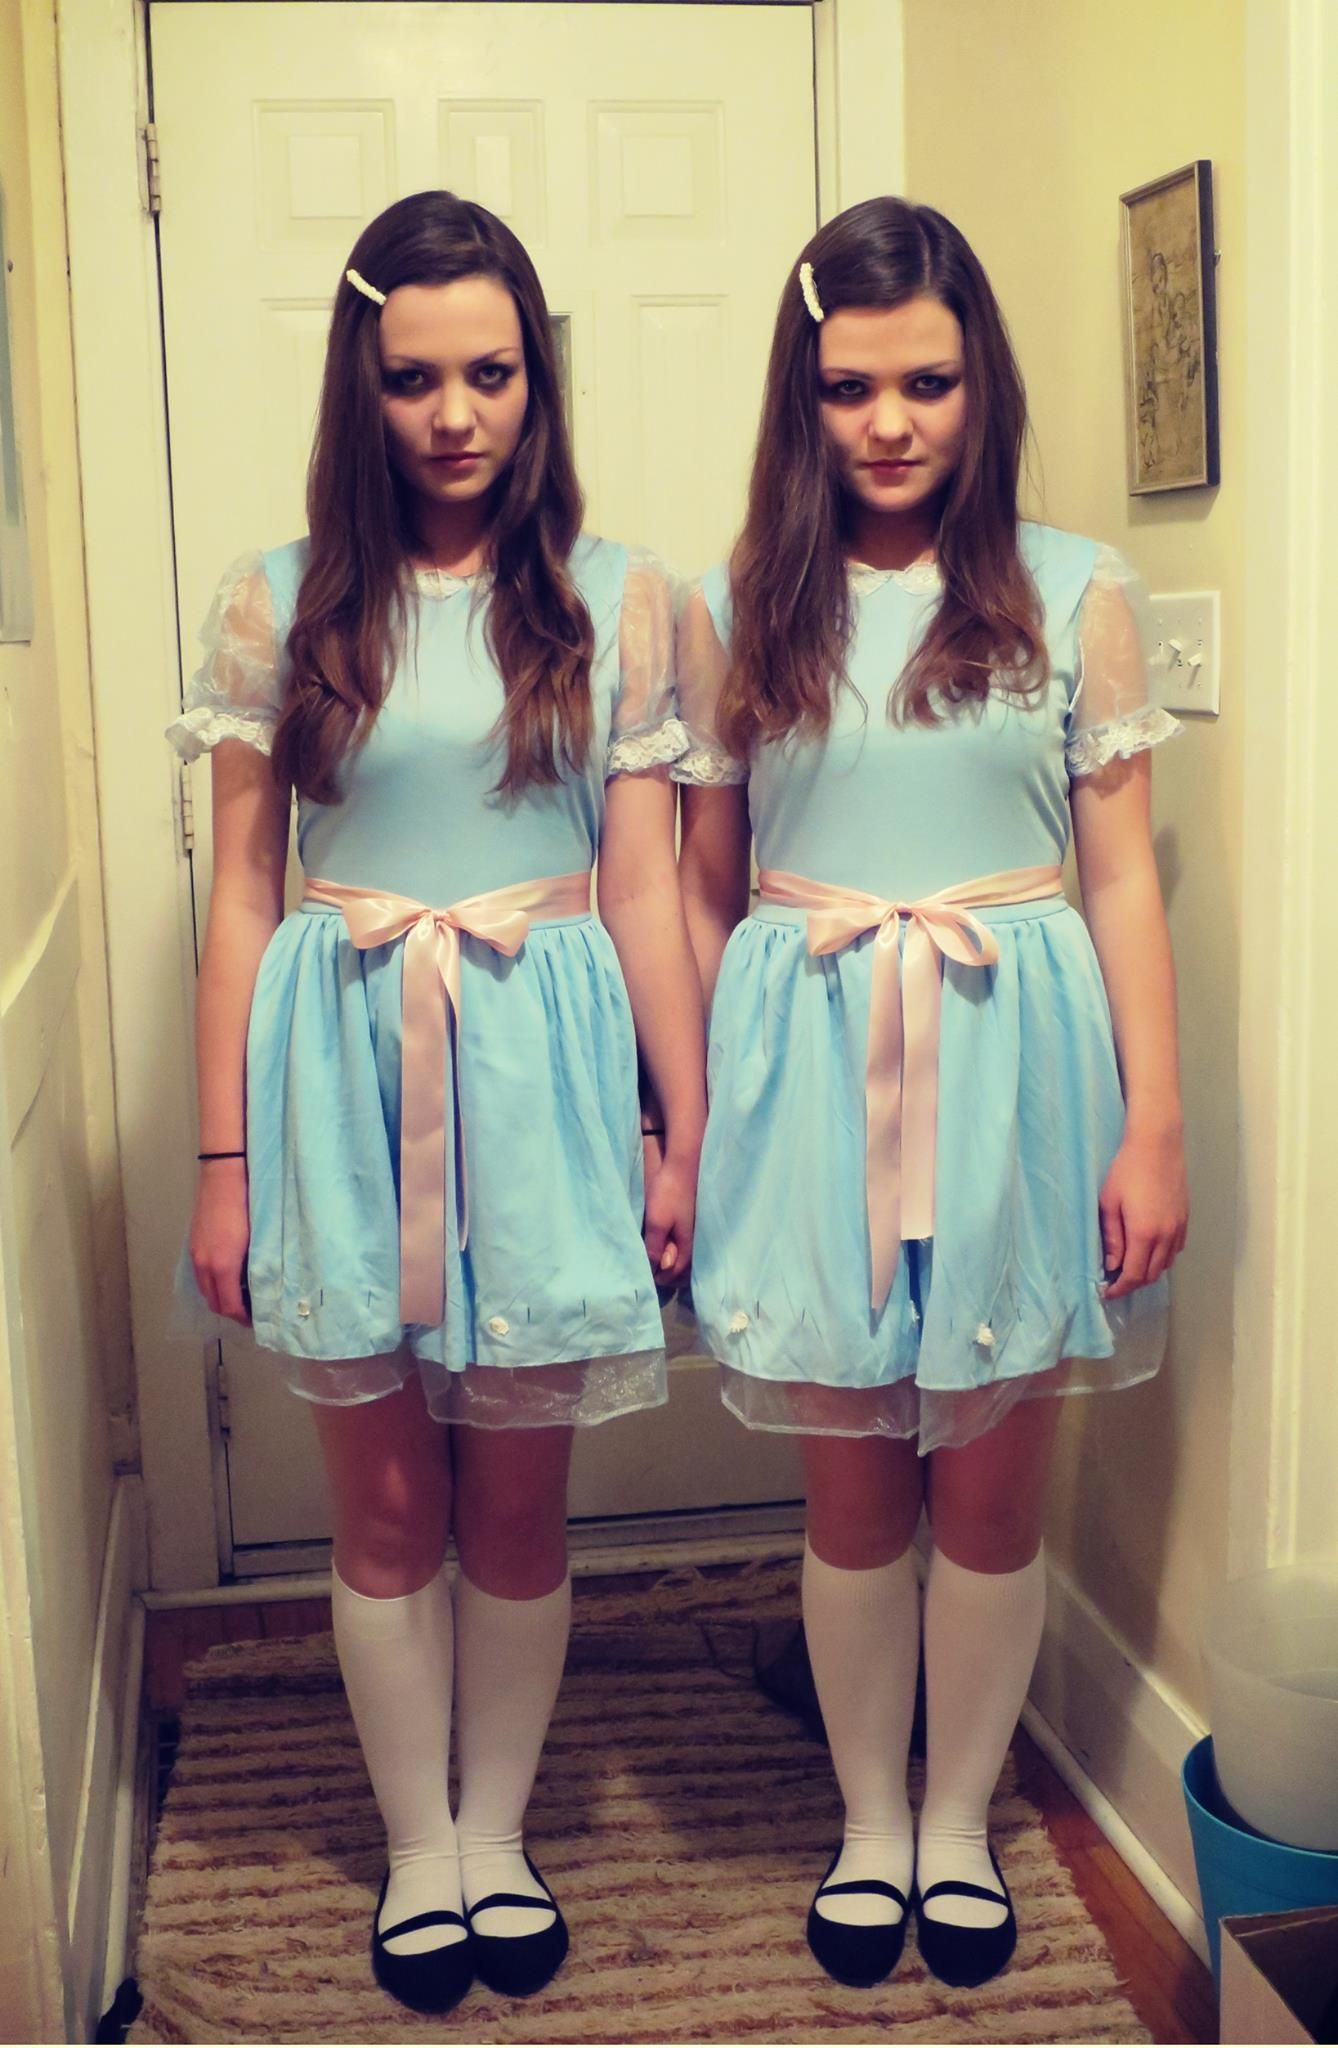 As brunette twins I think we pulled off our Halloween costumes this